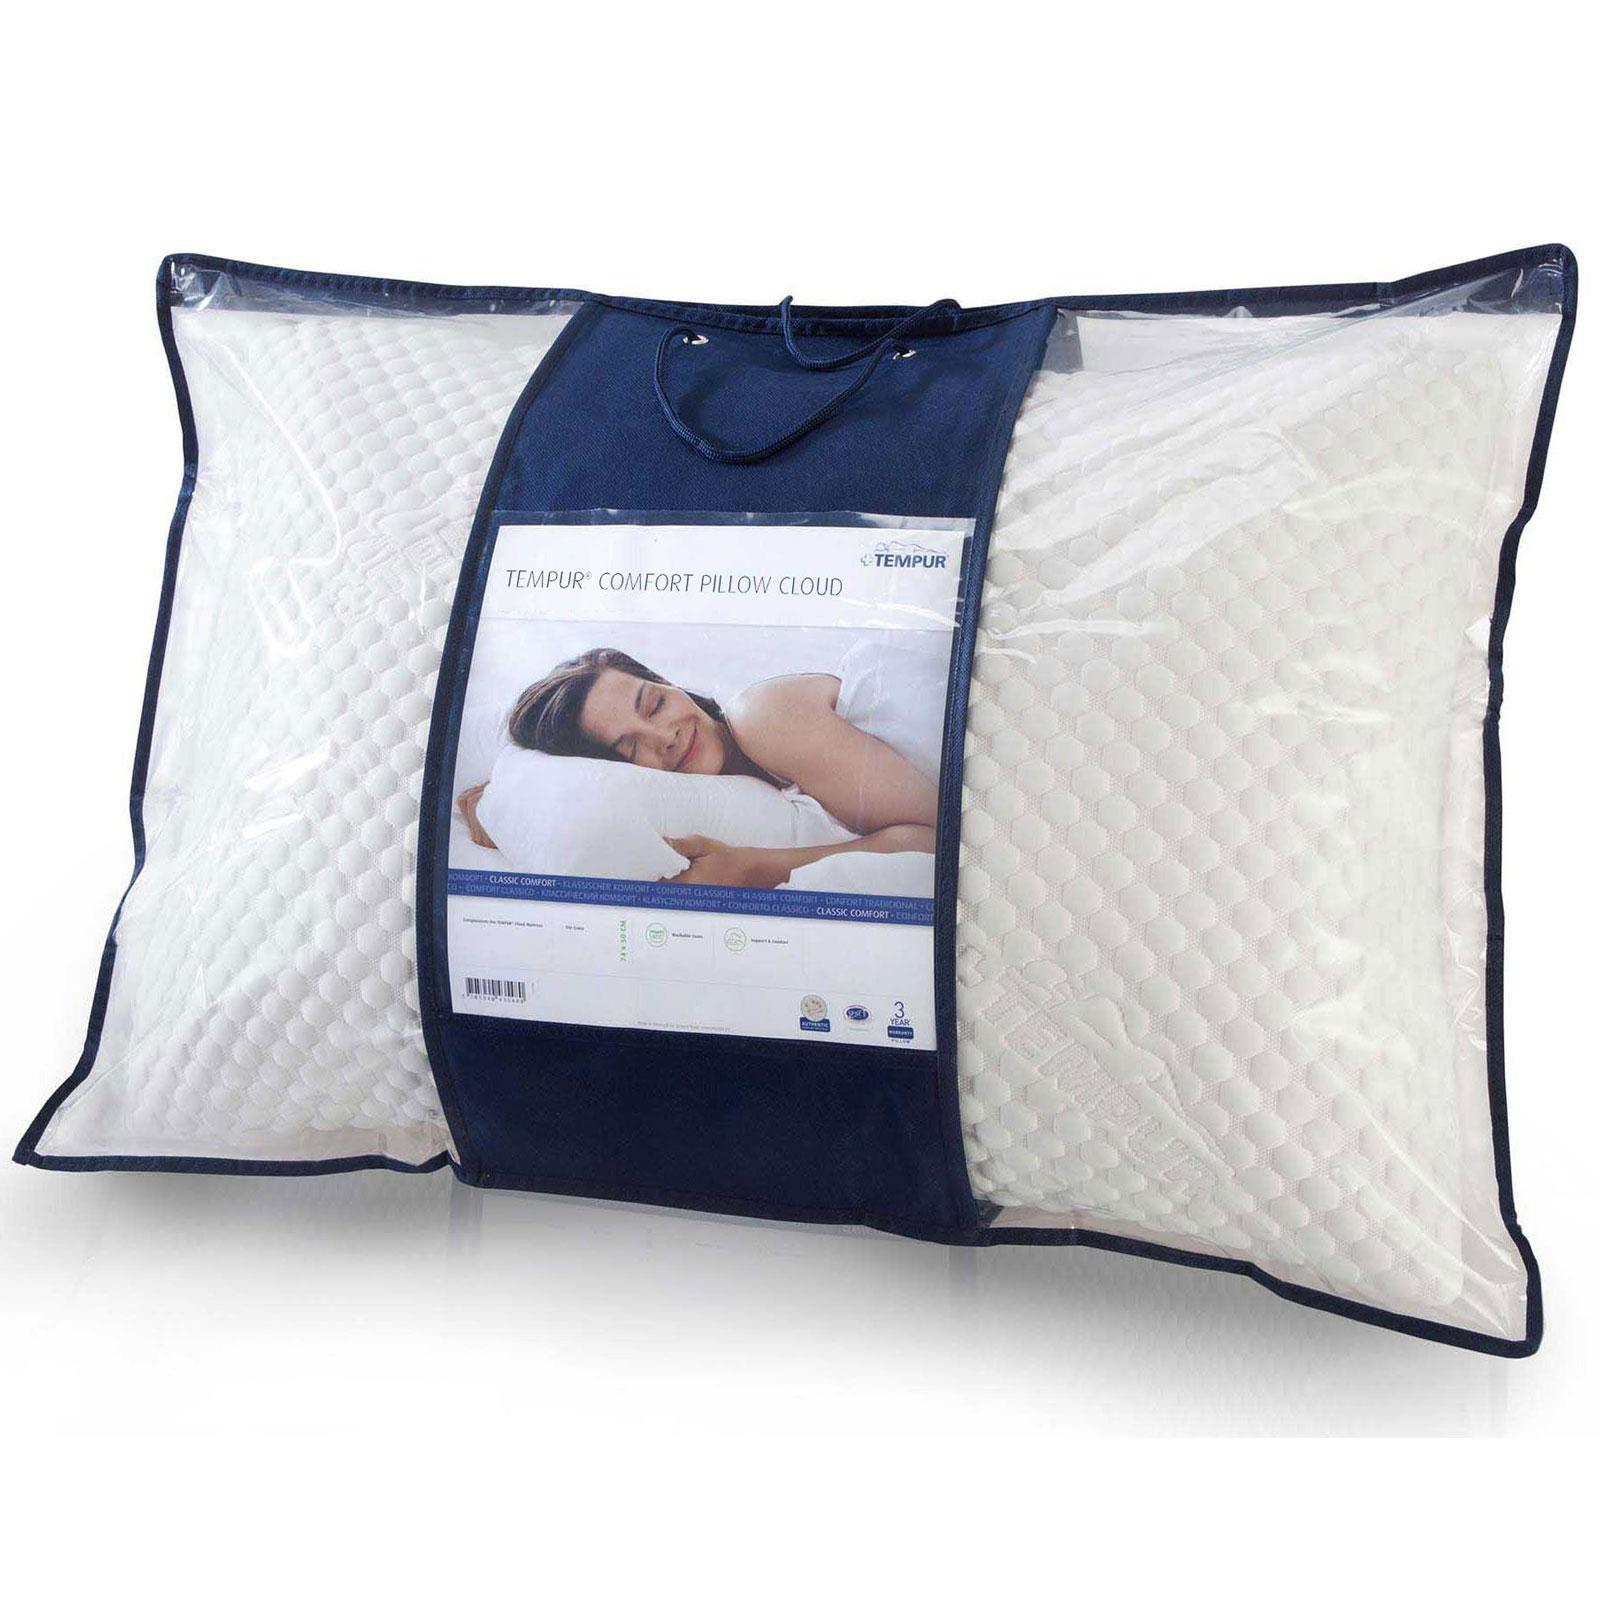 TEMPUR Comfort Cloud Pillow Reviews